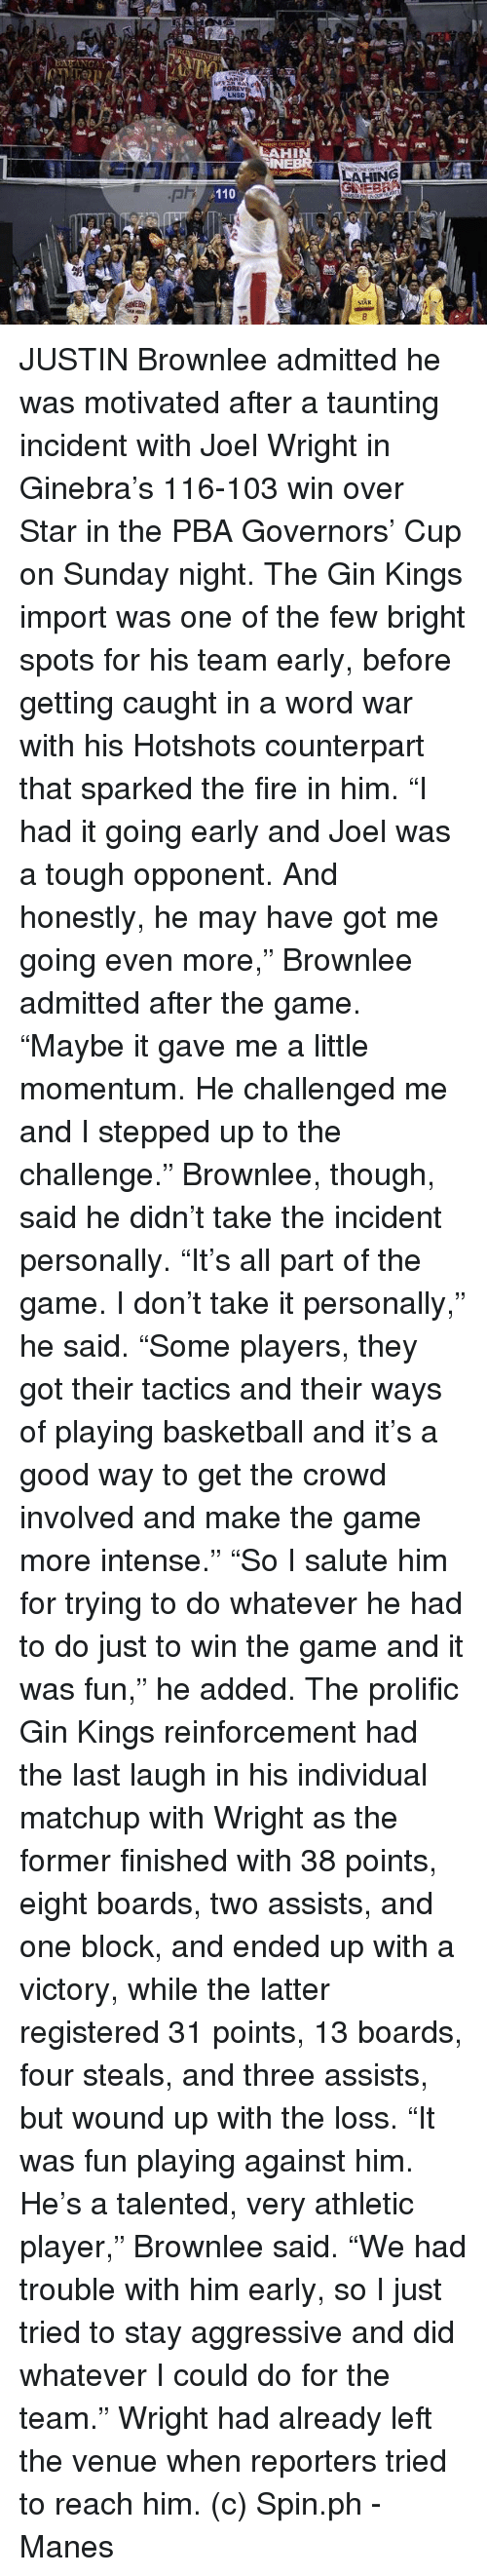 """Basketball, Fire, and The Game: FOREV  LNSD  LAHIN w . 독식  sas  INEBR  1A LAHING IT lyill  pri  a110  STAR  3  8  nt  劫 JUSTIN Brownlee admitted he was motivated after a taunting incident with Joel Wright in Ginebra's 116-103 win over Star in the PBA Governors' Cup on Sunday night.  The Gin Kings import was one of the few bright spots for his team early, before getting caught in a word war with his Hotshots counterpart that sparked the fire in him.  """"I had it going early and Joel was a tough opponent. And honestly, he may have got me going even more,"""" Brownlee admitted after the game. """"Maybe it gave me a little momentum. He challenged me and I stepped up to the challenge.""""  Brownlee, though, said he didn't take the incident personally.  """"It's all part of the game. I don't take it personally,"""" he said. """"Some players, they got their tactics and their ways of playing basketball and it's a good way to get the crowd involved and make the game more intense.""""  """"So I salute him for trying to do whatever he had to do just to win the game and it was fun,"""" he added.  The prolific Gin Kings reinforcement had the last laugh in his individual matchup with Wright as the former finished with 38 points, eight boards, two assists, and one block, and ended up with a victory, while the latter registered 31 points, 13 boards, four steals, and three assists, but wound up with the loss.  """"It was fun playing against him. He's a talented, very athletic player,"""" Brownlee said. """"We had trouble with him early, so I just tried to stay aggressive and did whatever I could do for the team.""""  Wright had already left the venue when reporters tried to reach him.  (c) Spin.ph  -Manes"""